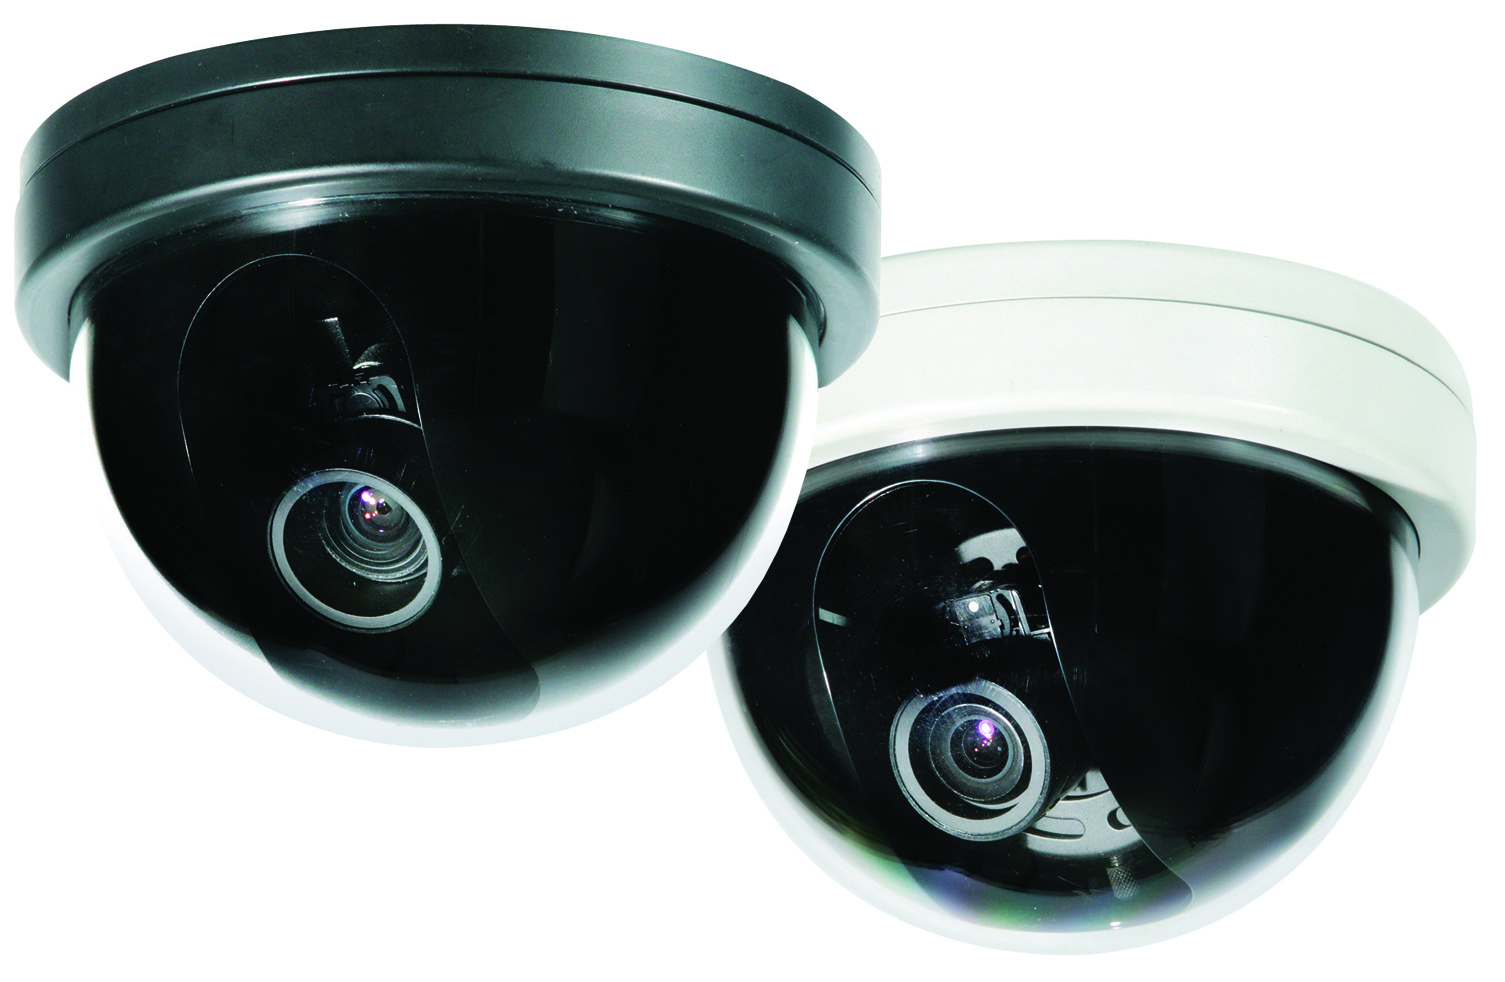 Security Cameras and Video Surveillance Systems